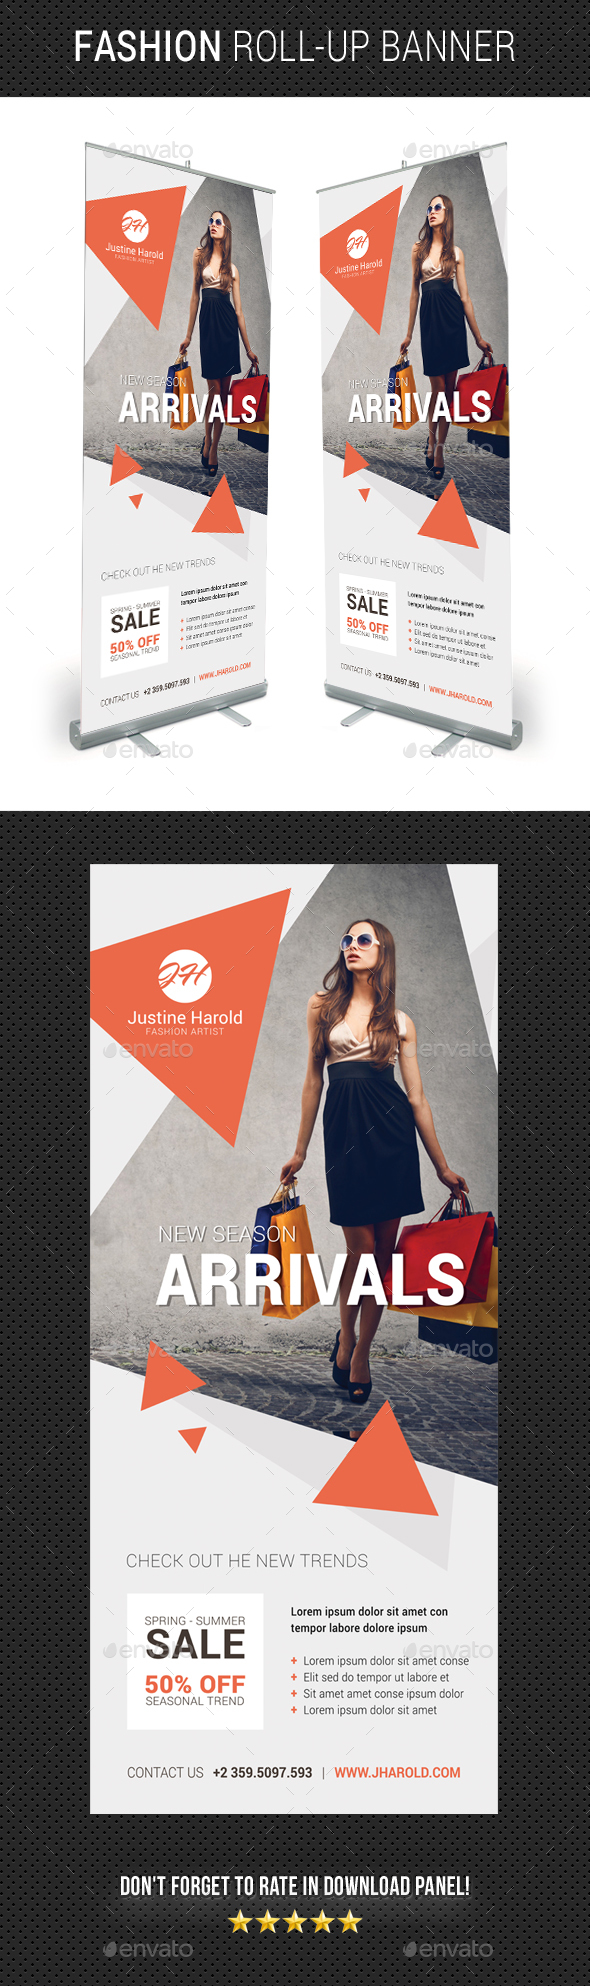 Fashion Roll-Up Banner 05 - Signage Print Templates